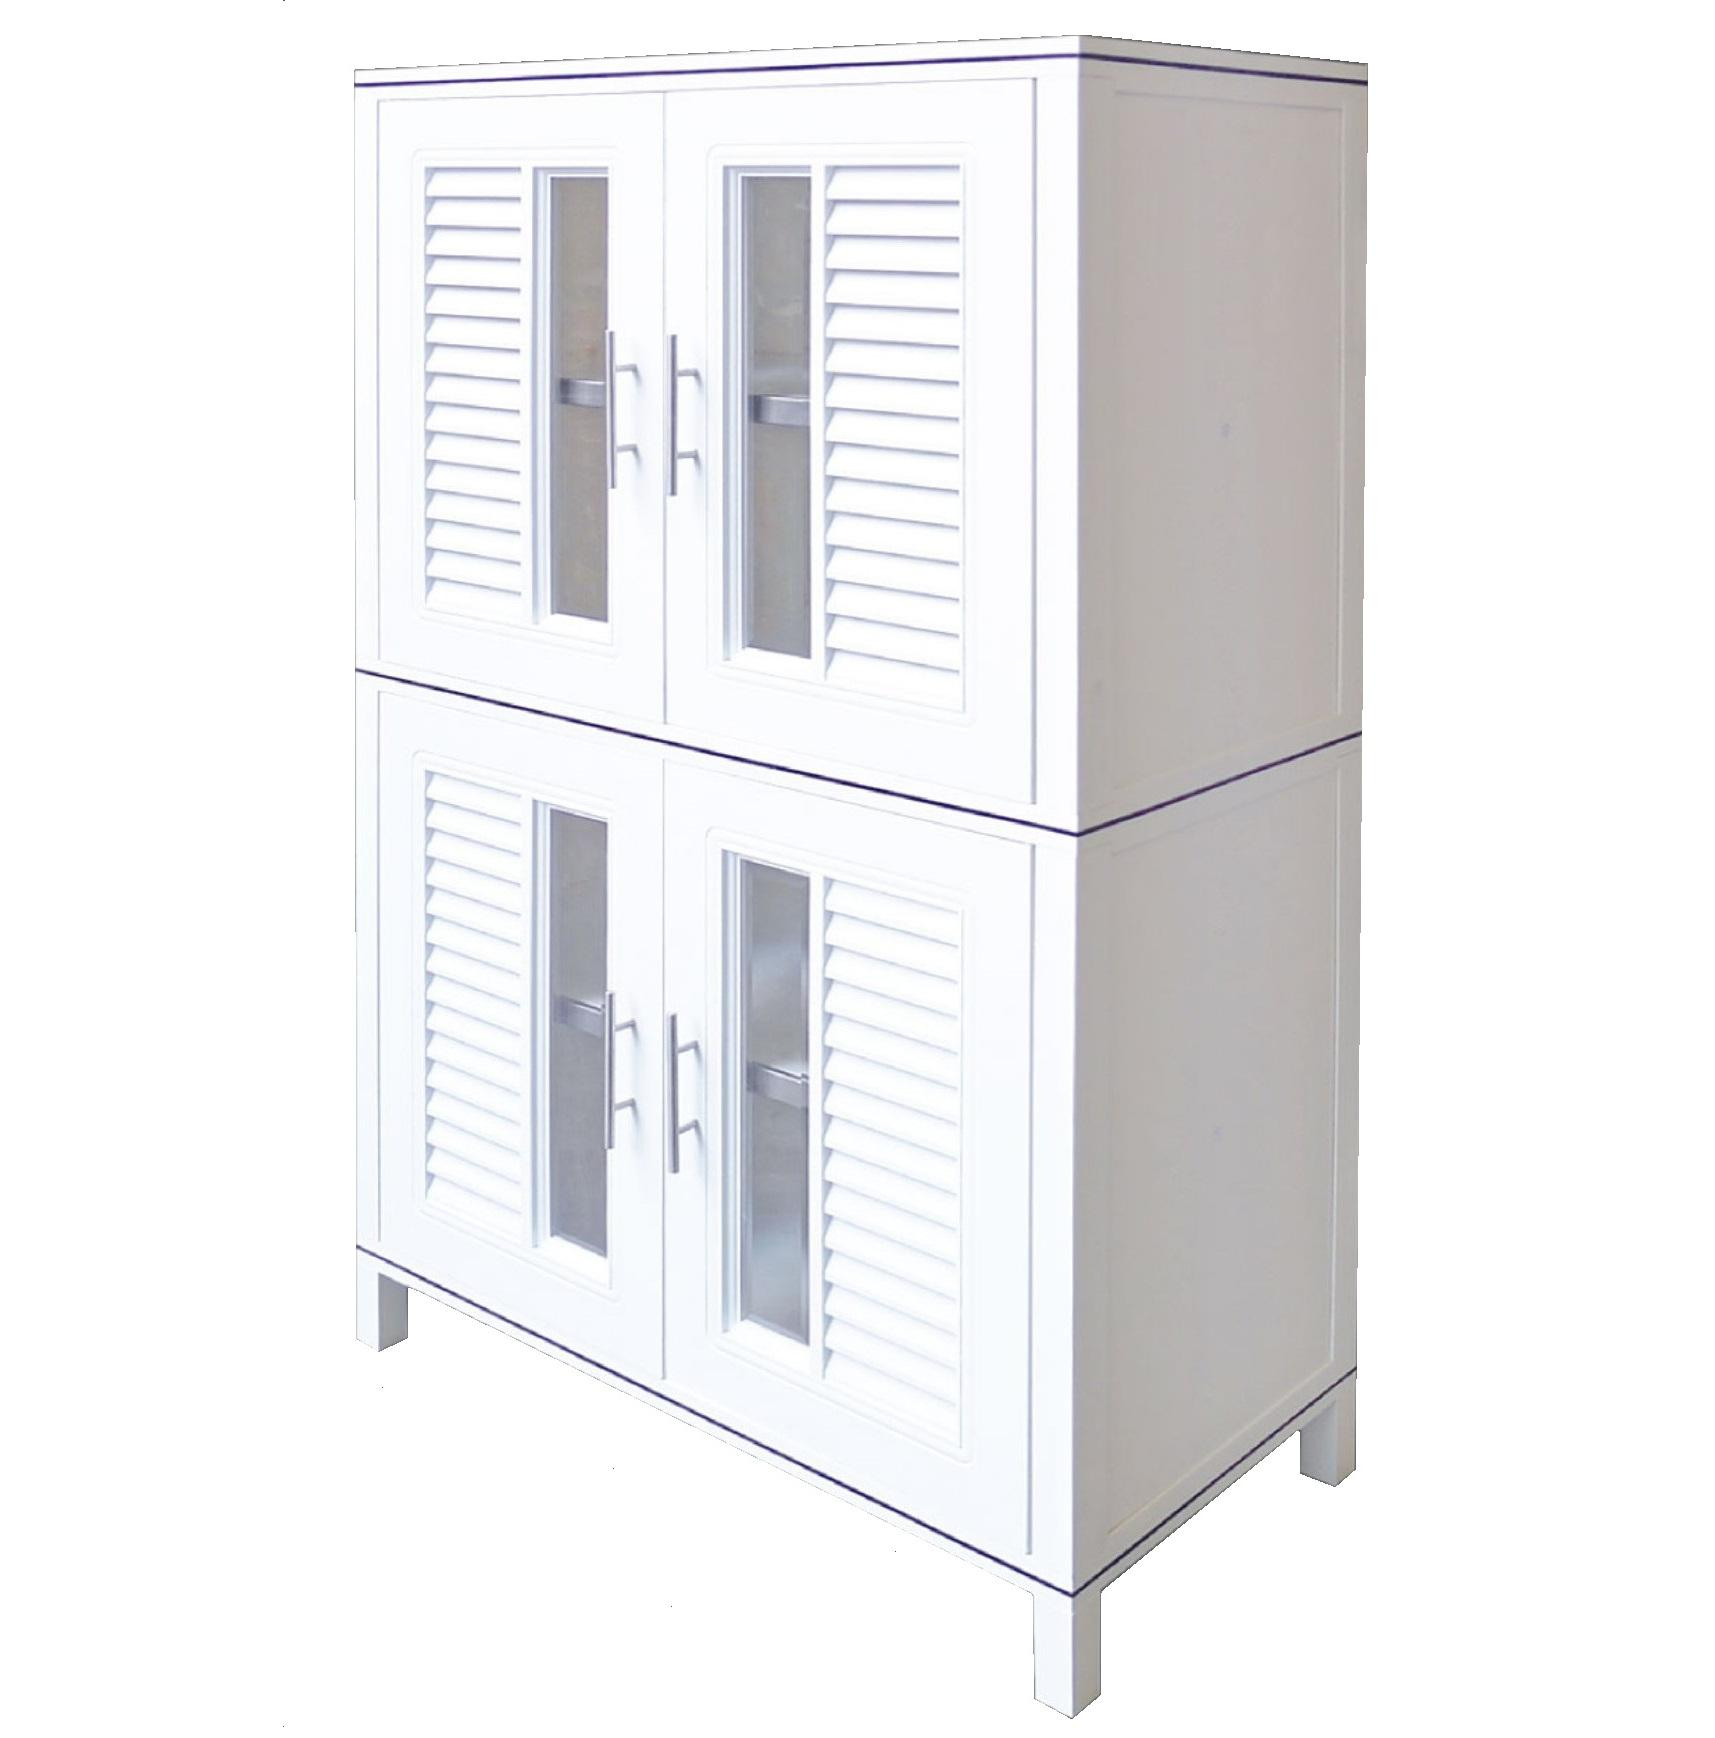 KING CUPBOARD 140K Multi Purpose Waterproof Storage Cabinet with Nano Coating (W88.5 x D45 x H139.5cm)